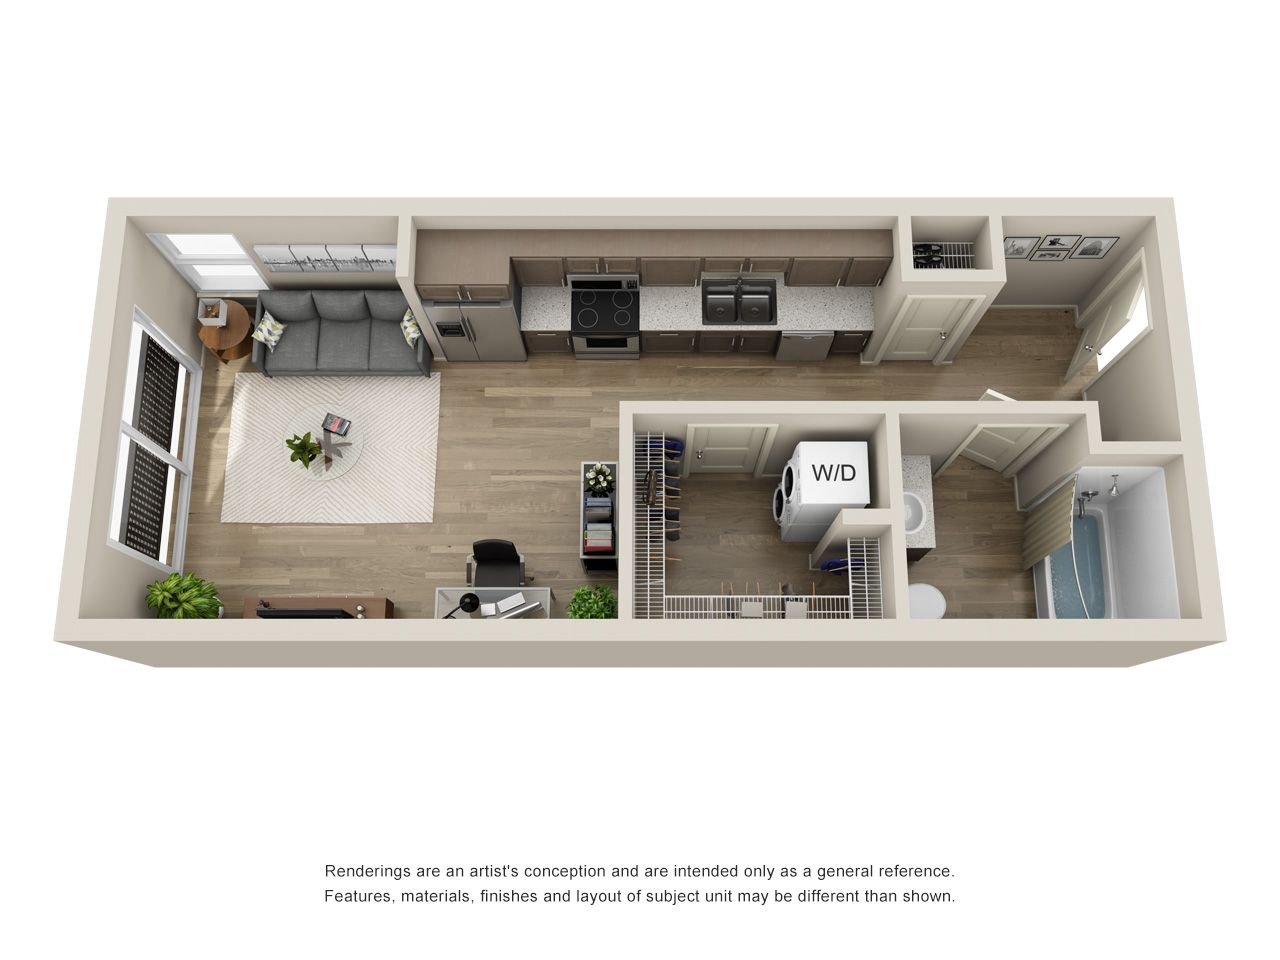 S1 Studio 490 Sq Ft Studio Apartment Layout Sims House Design Small Apartment Layout